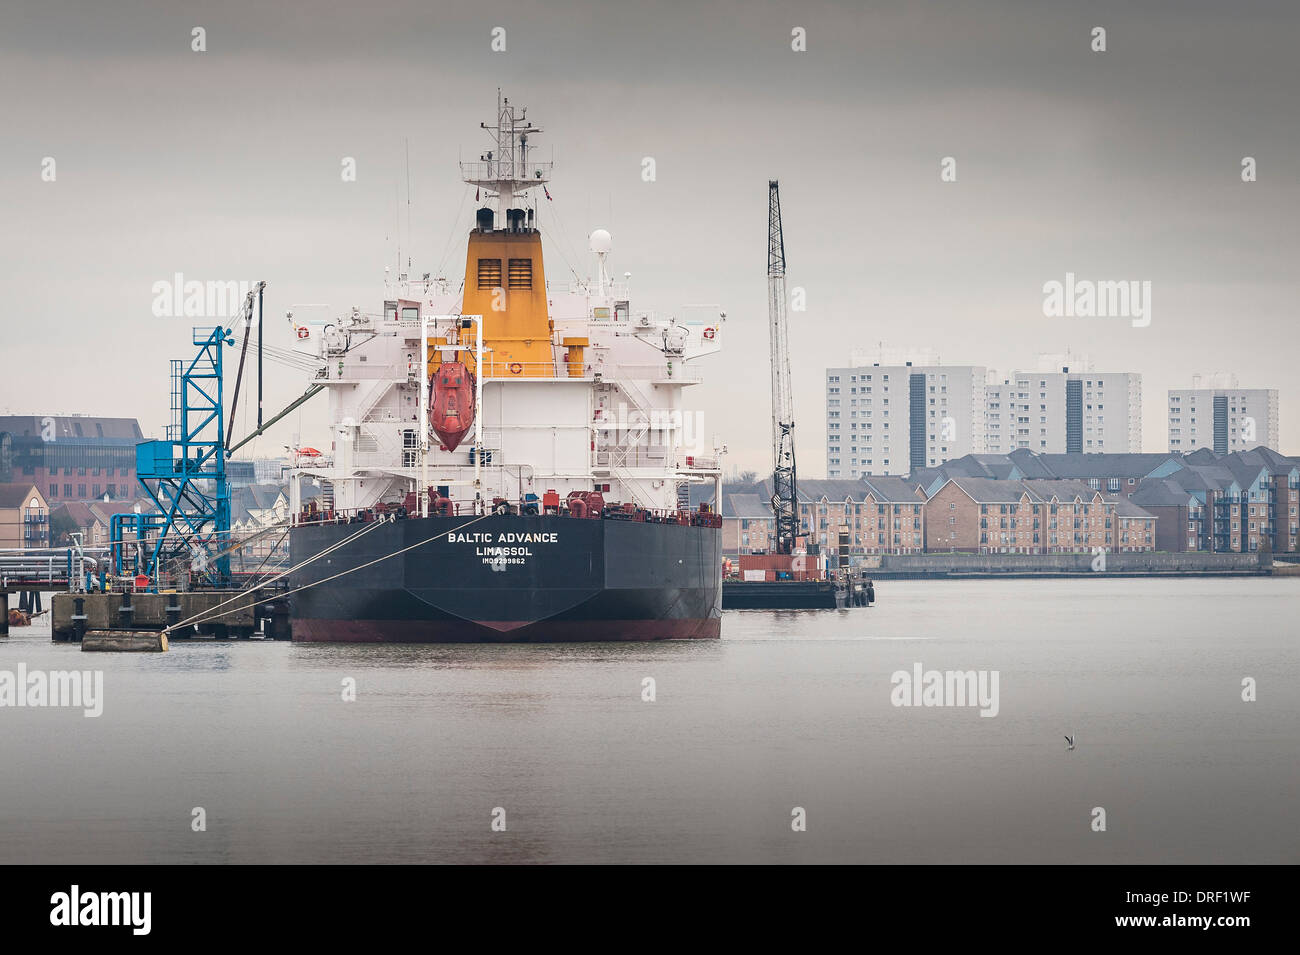 The Oil/Chemical tanker Baltic Advance docked on the River Thames. - Stock Image